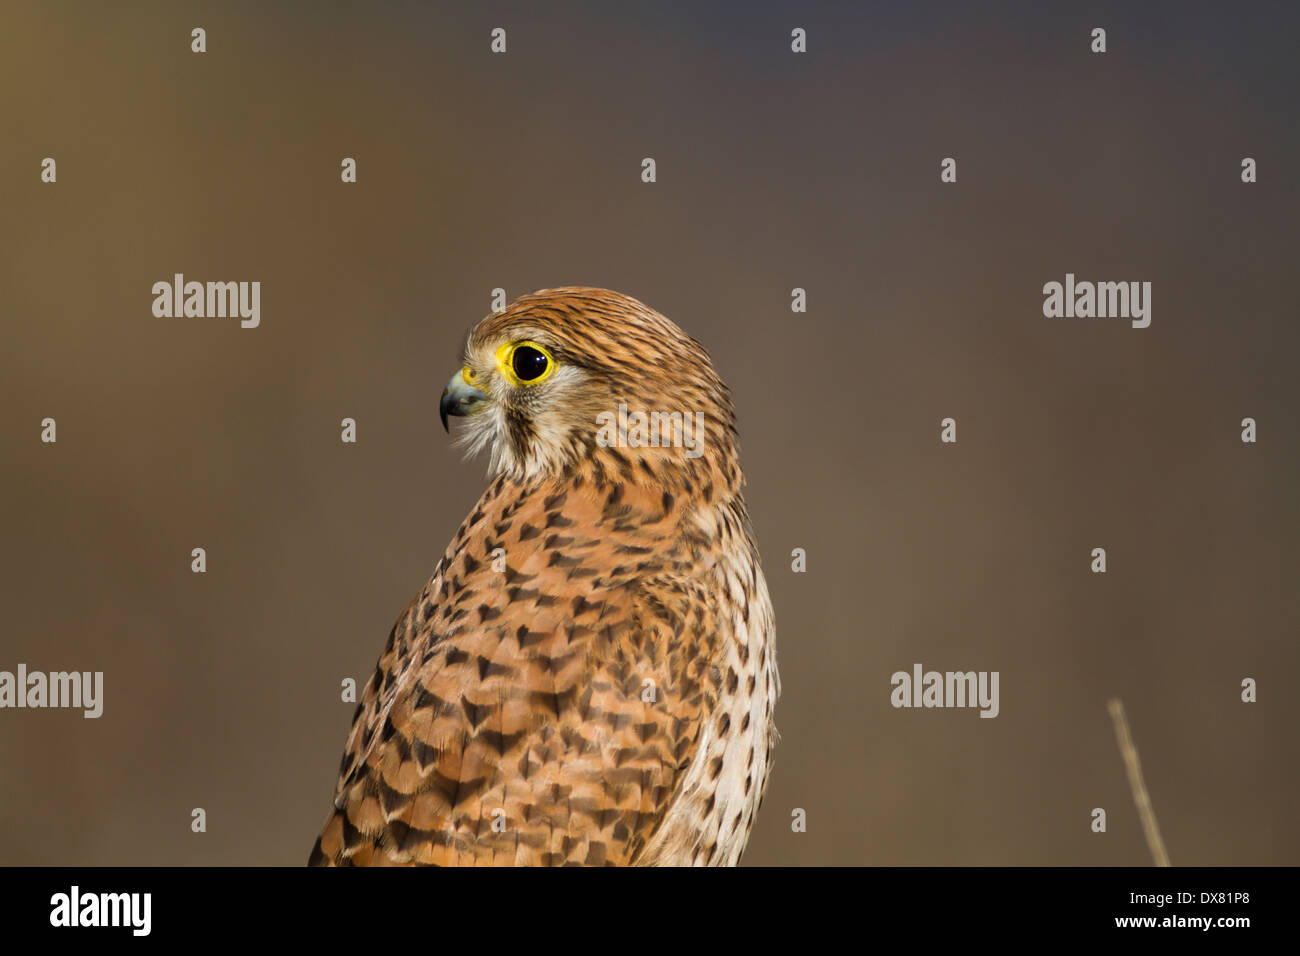 Common kestrel (Falco tinnunculus) perched on a branch - Stock Image